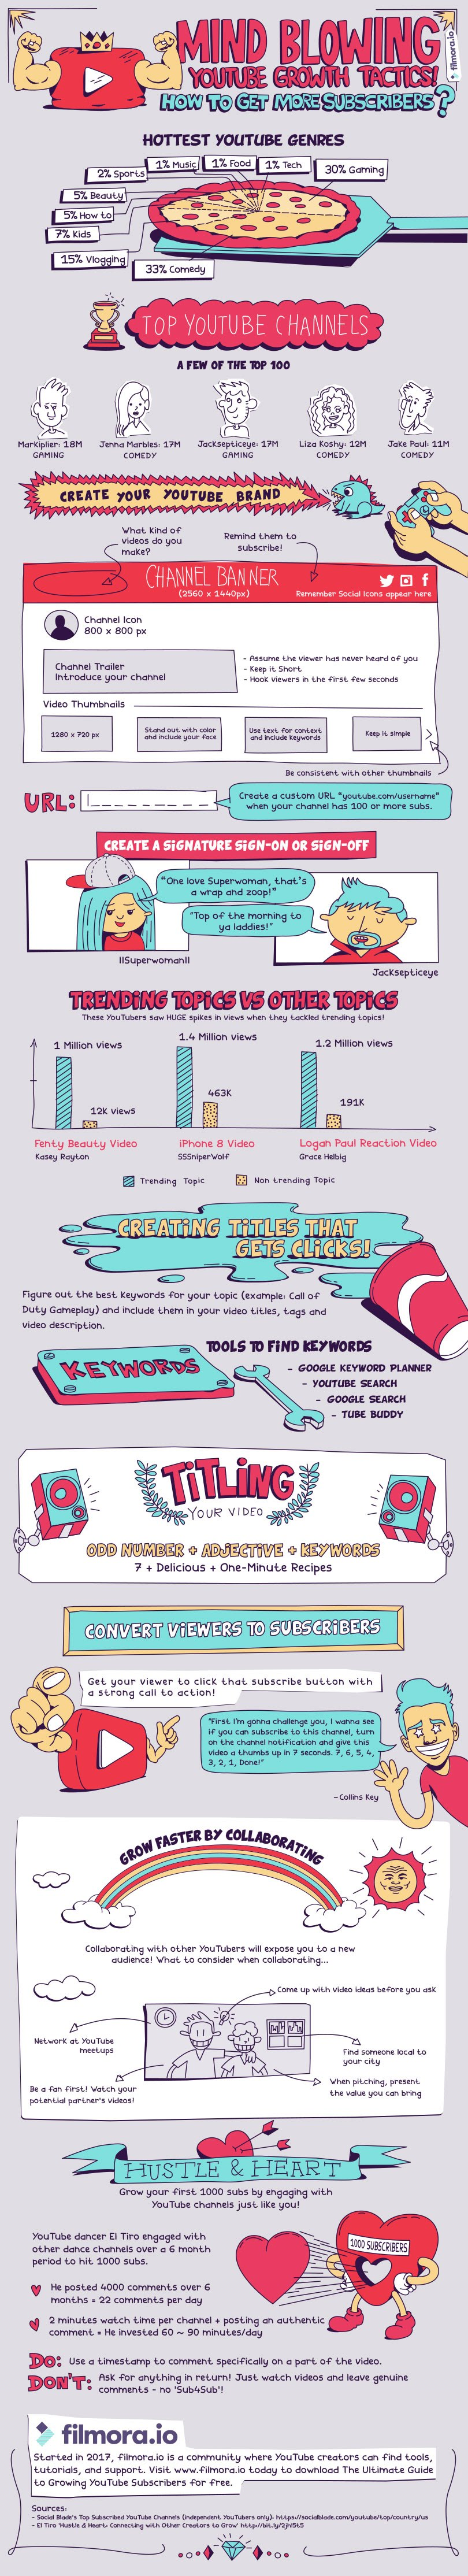 The Hunt for YouTube Subscribers – A Breakdown of YouTube Fame - infographic